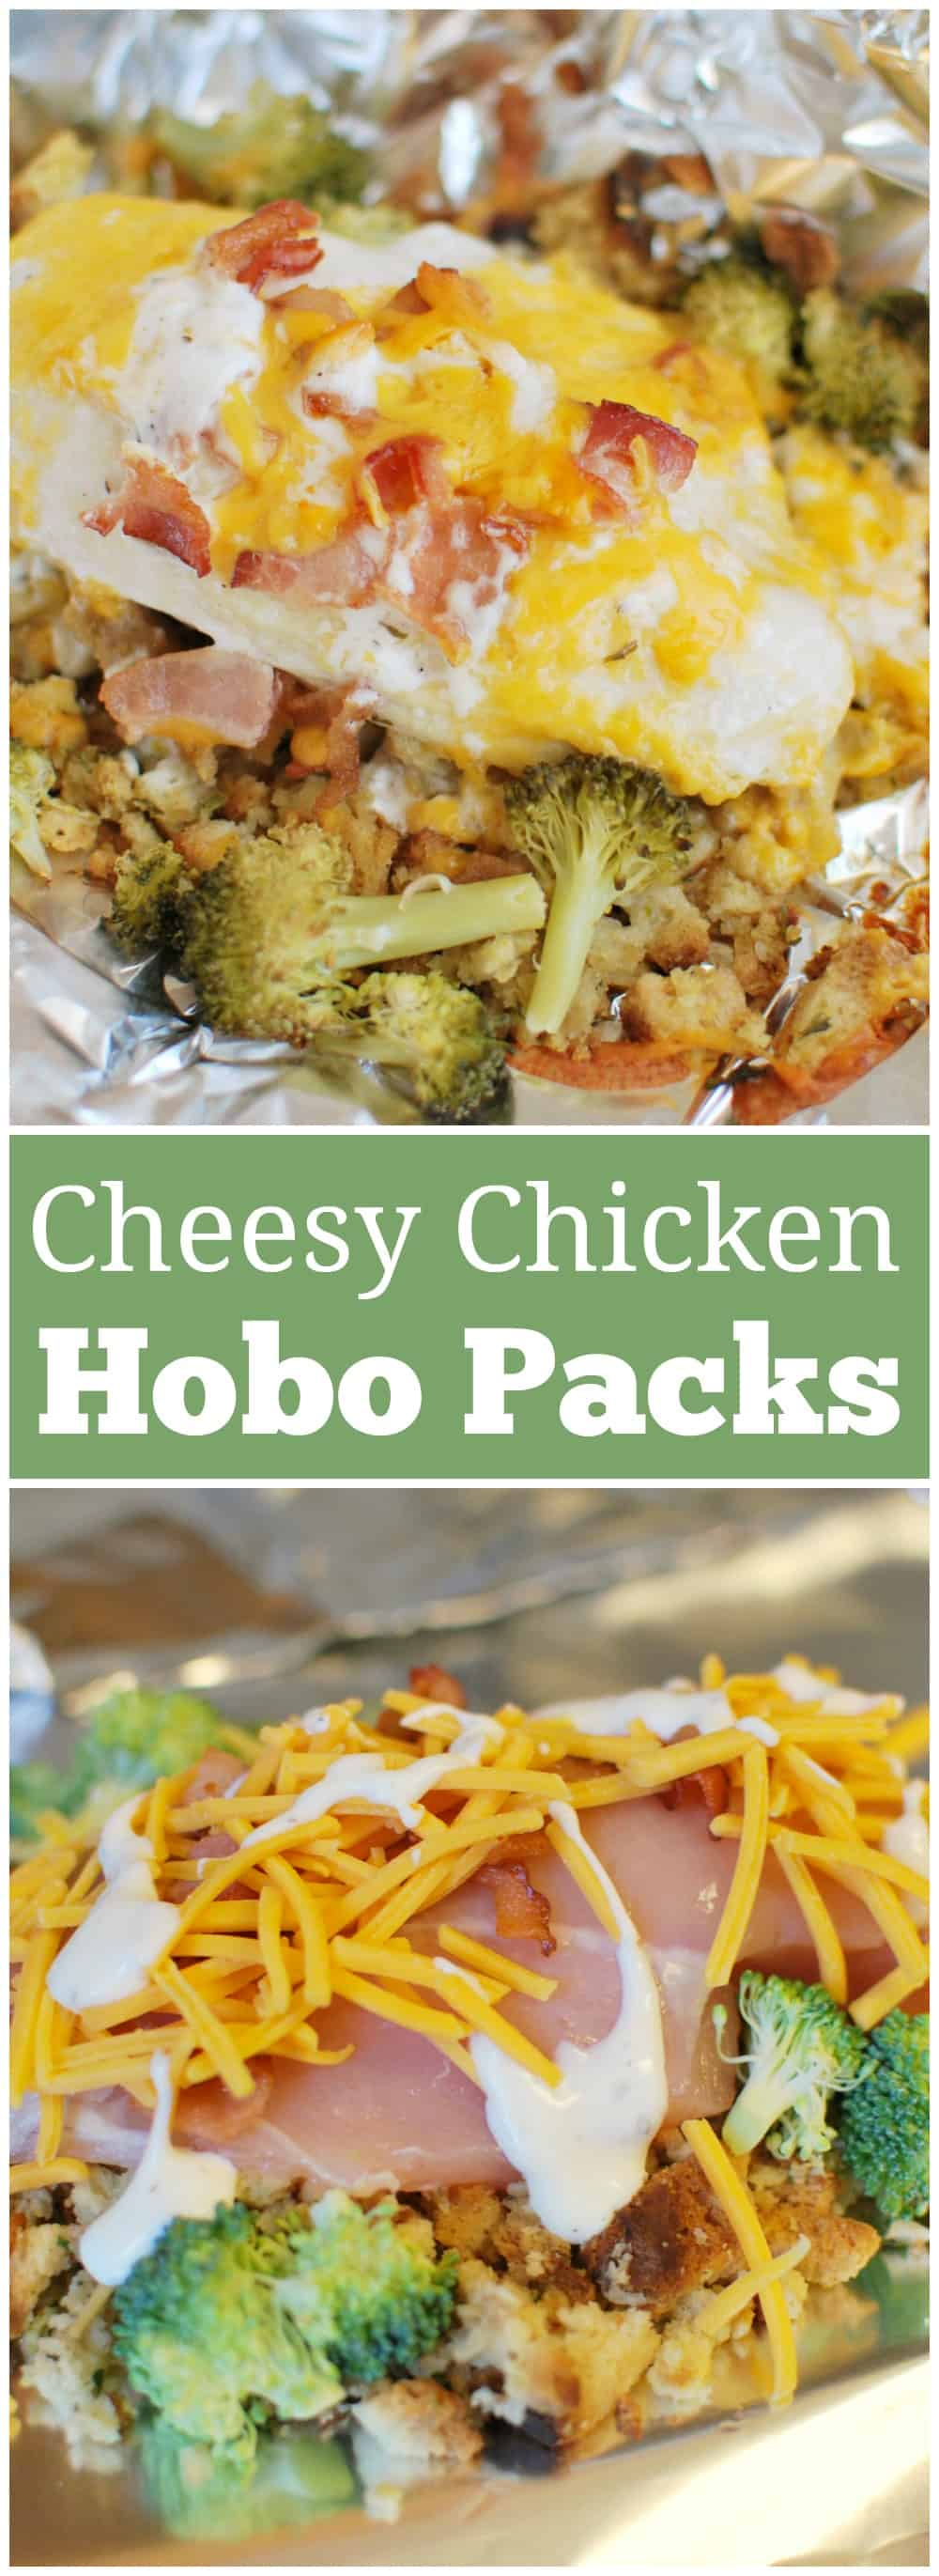 Cheesy Chicken Hobo Packets - stuffing, chicken, broccoli, bacon, and cheese all layered and cooked in foil packets. They can be cooked in the oven or on the grill. Easiest dinner ever!